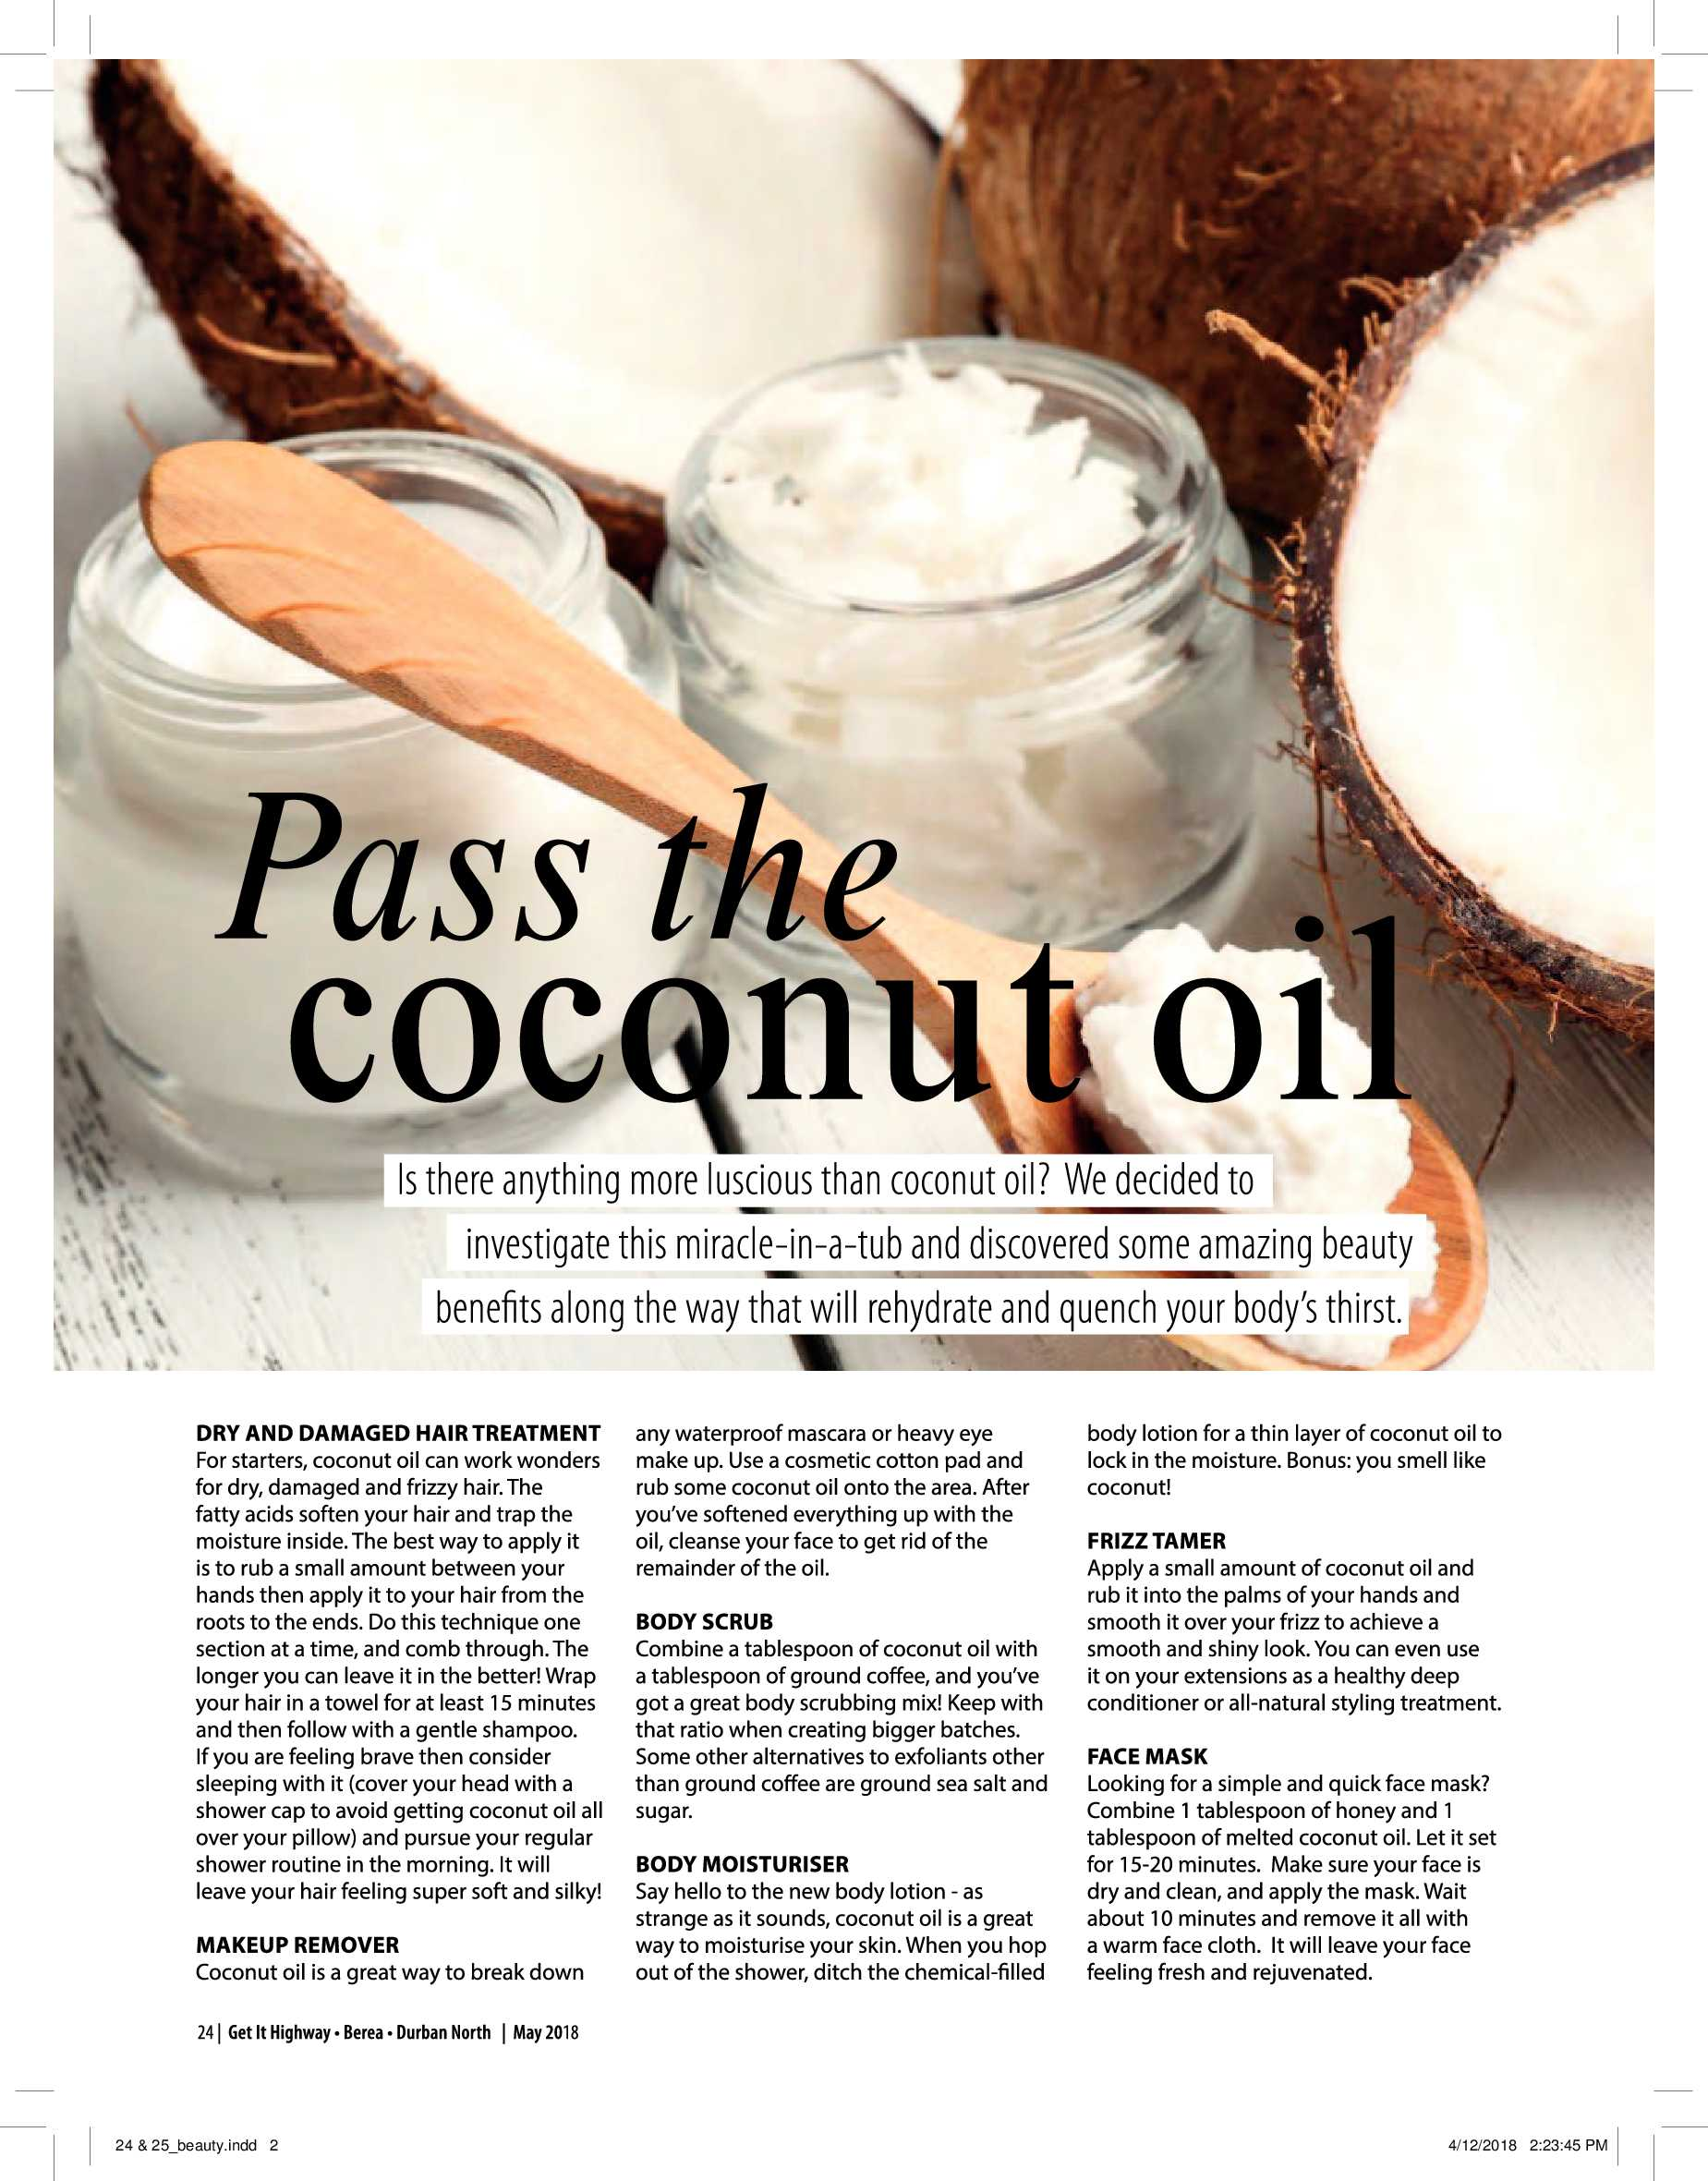 get-magazine-durban-may-2018-epapers-page-26